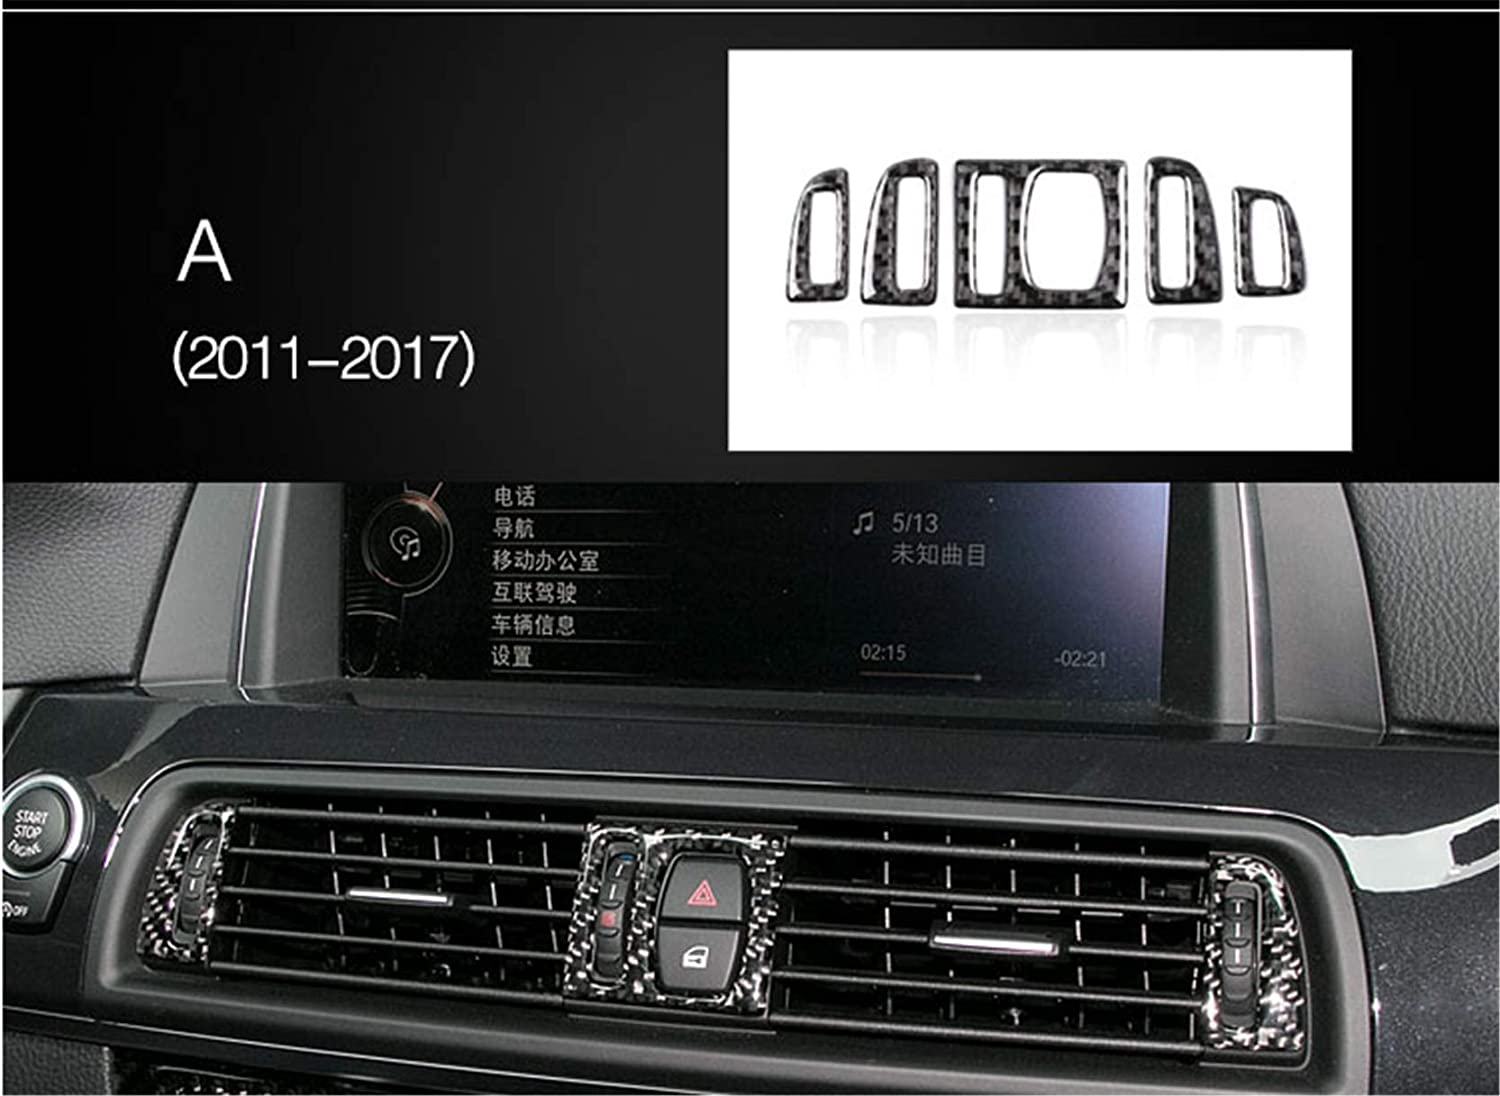 Carbon Fiber Air Conditioning AC Air Vent Outer Panel Frame Decal Cover Trim for BMW 5 Series 6th F10 F11 F07 F18 520 523 525 528 530 535 2010-2016 5ZJ Classic